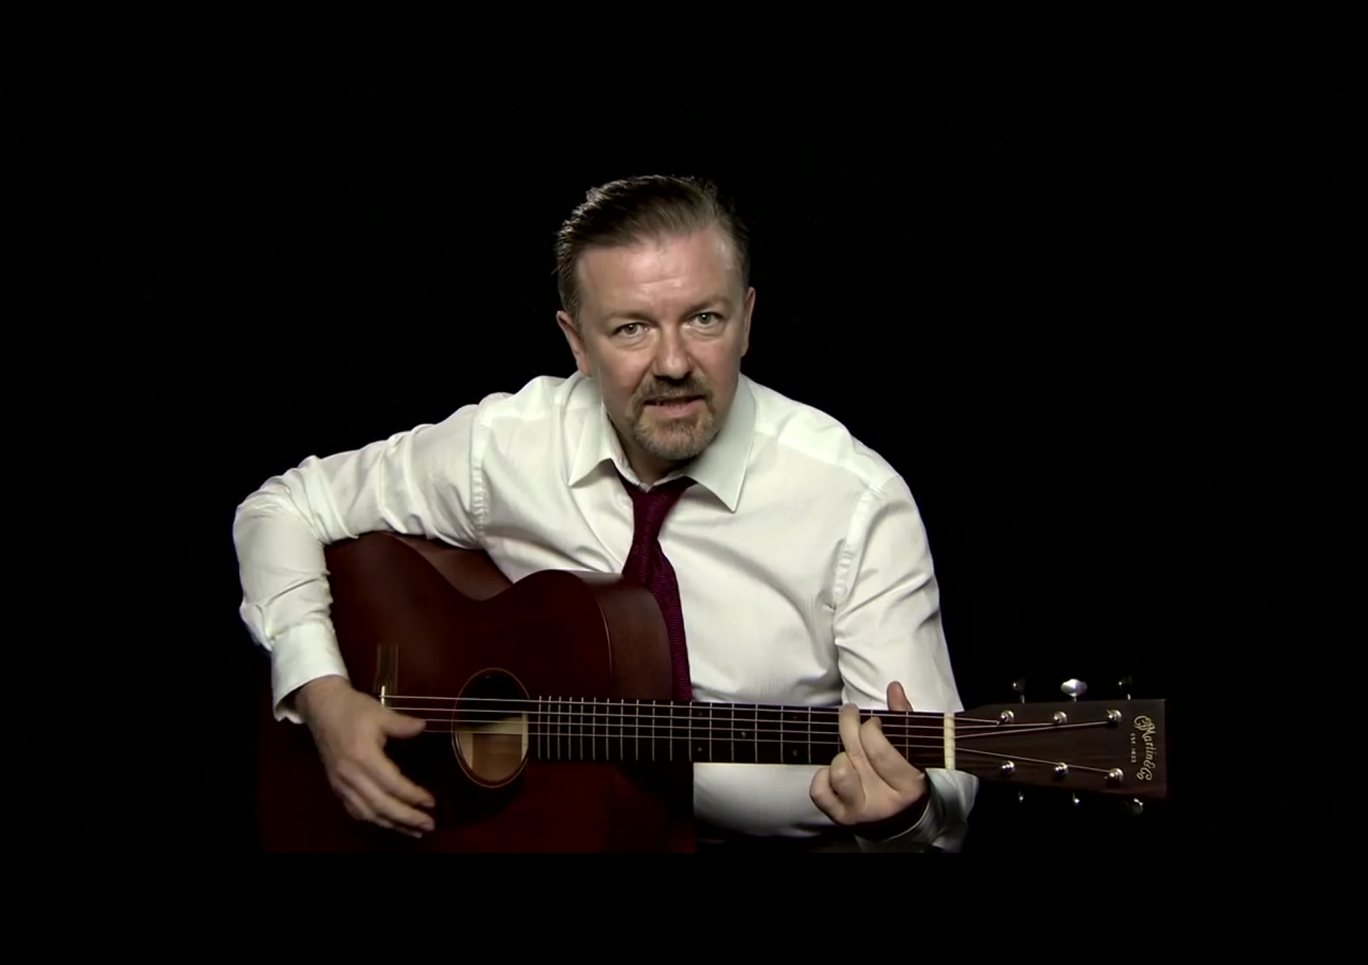 Gervais' 'Learn Guitar with David Brent' YouTube series